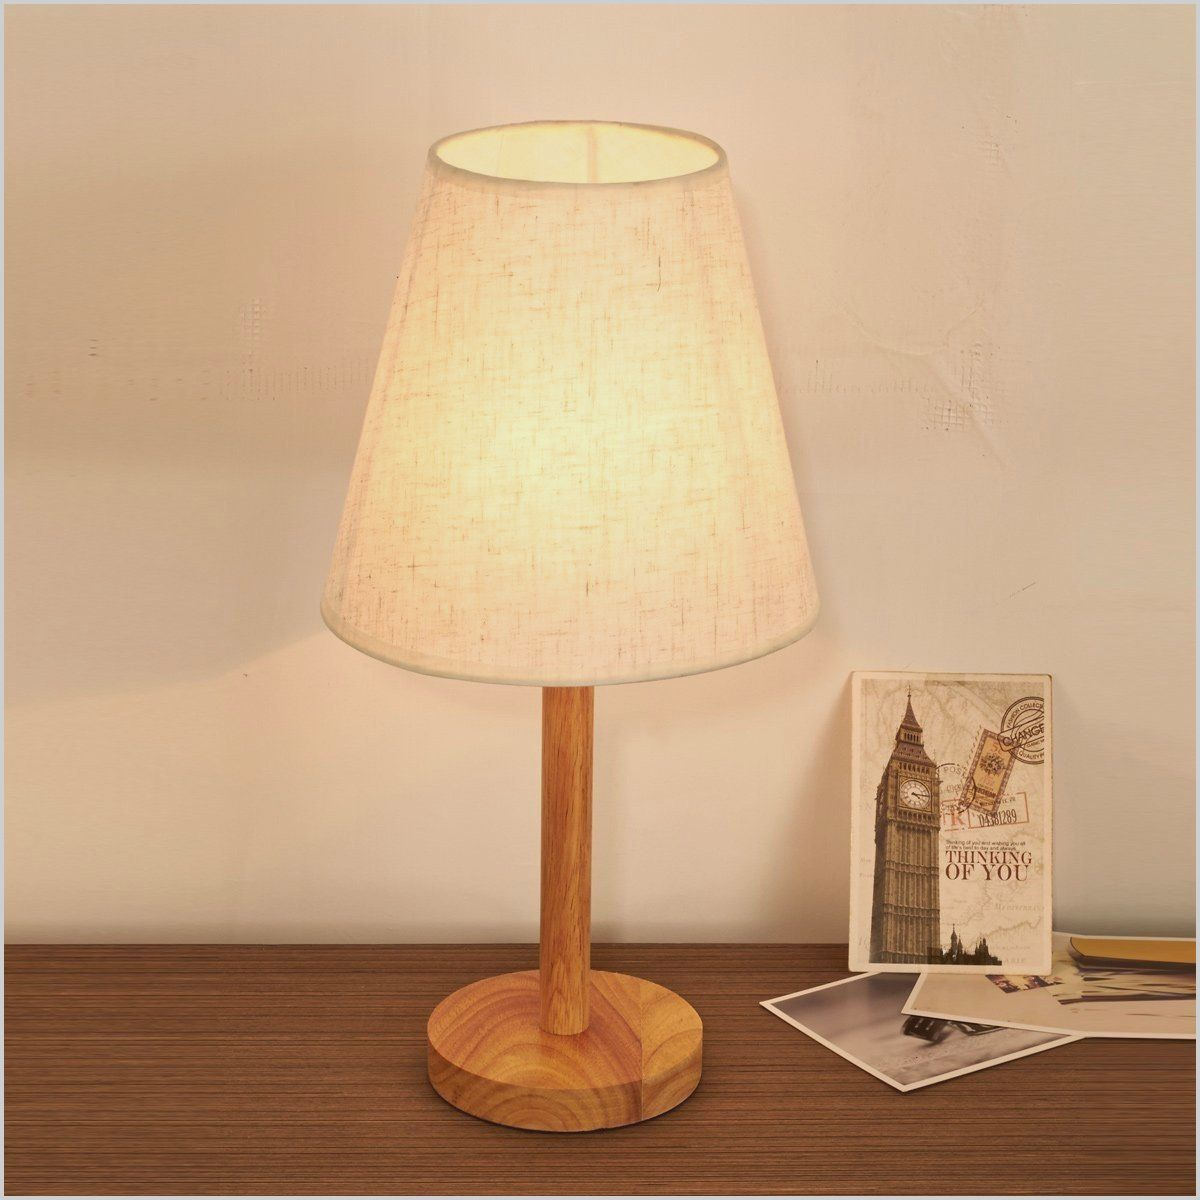 Modern Table Lamps For Bedroom Amazon Modern Table Lamp Table Lamp Reading Lamp Bedroom